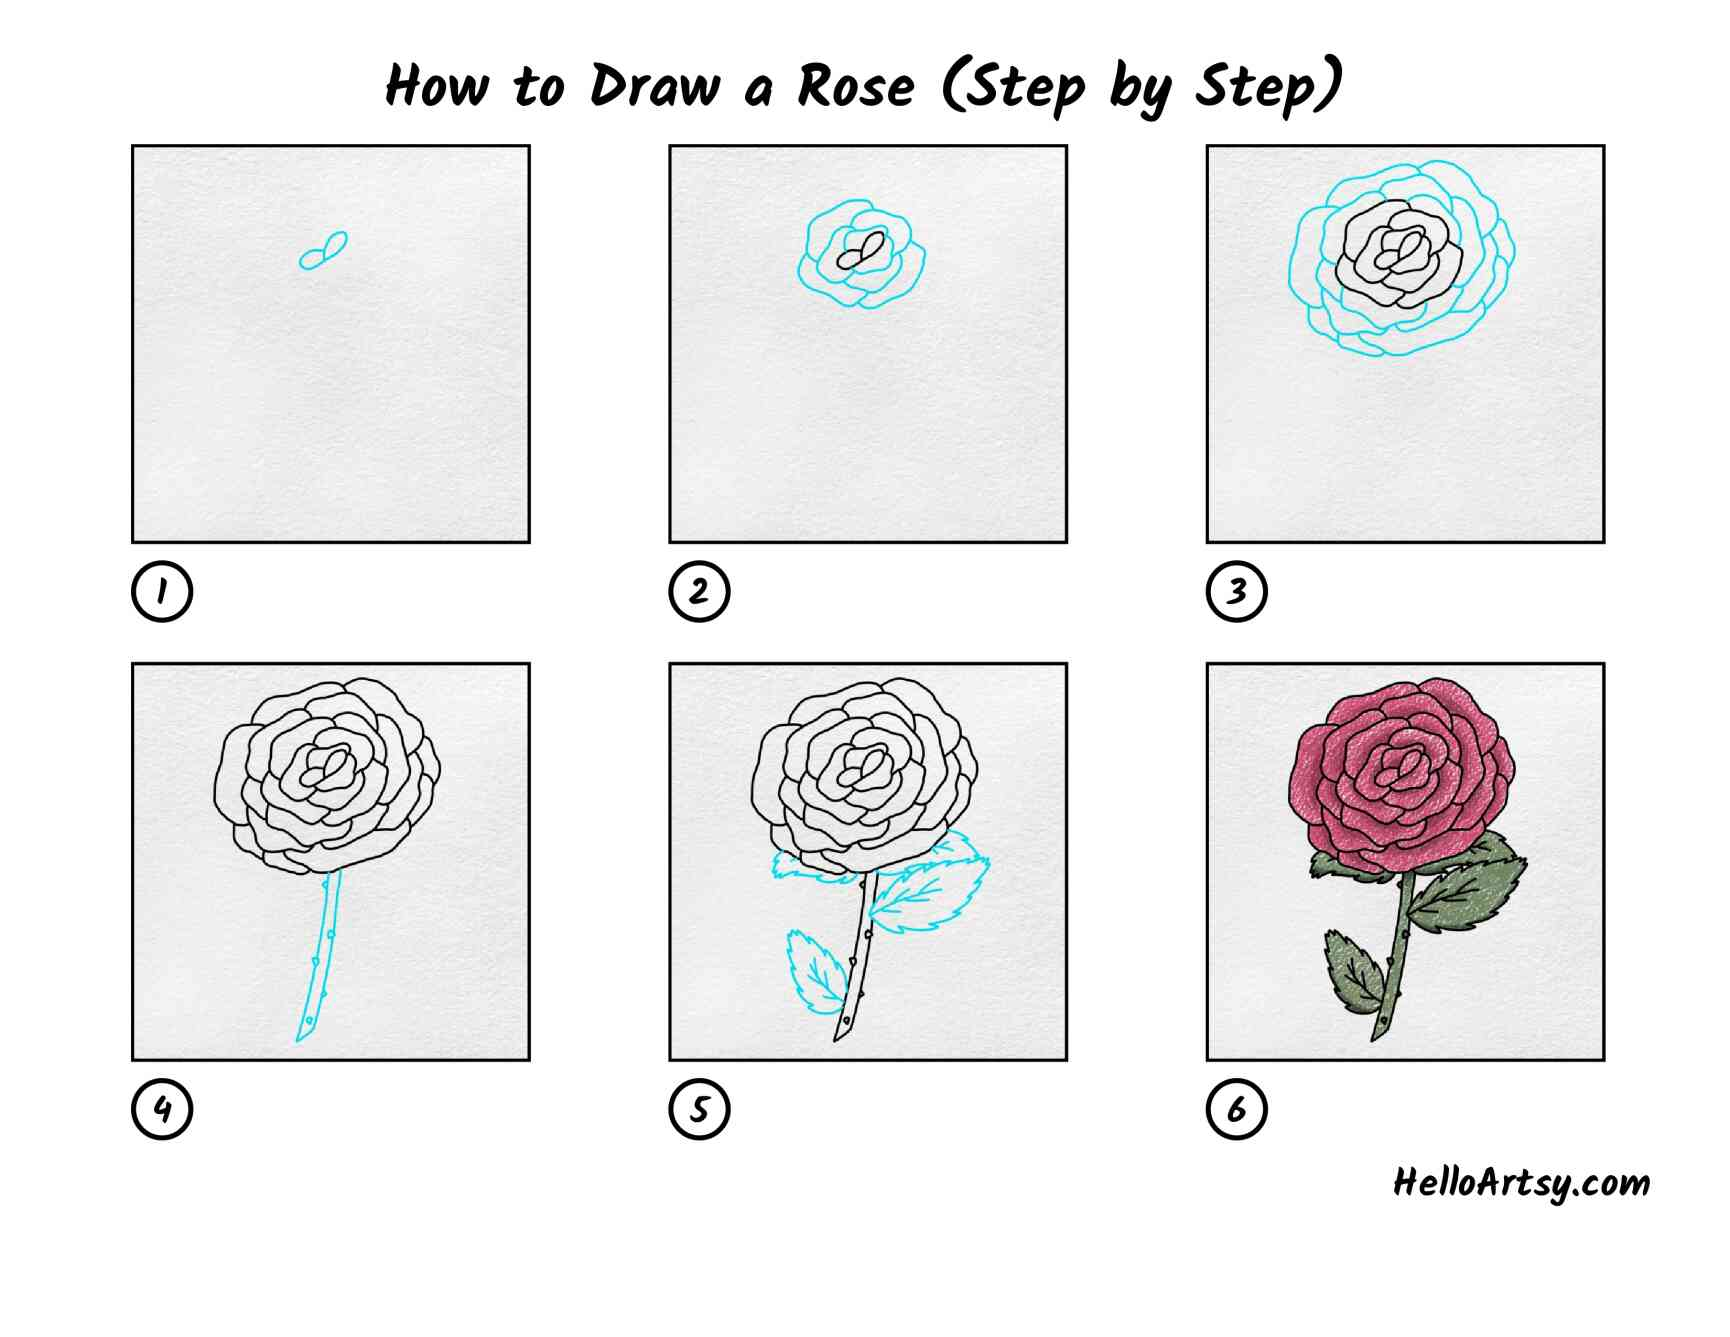 How To Draw A Rose Step By Step: All Steps